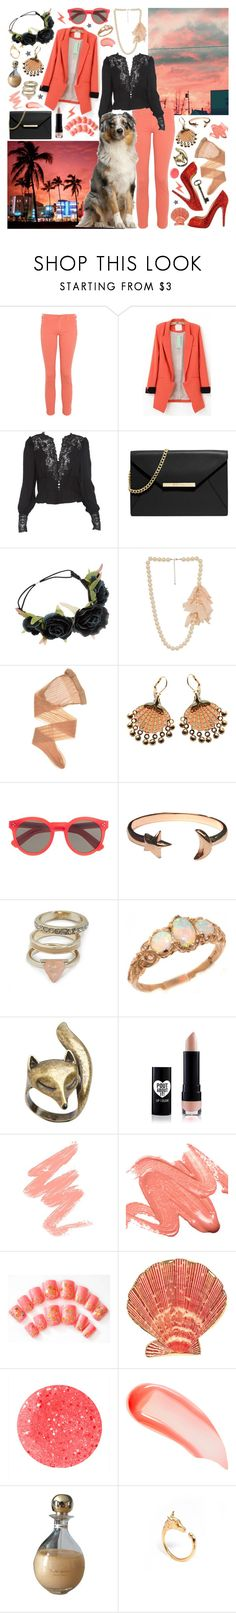 """""""I live to love and adore you"""" by aquabatgirl ❤ liked on Polyvore featuring South Beach, James Jeans, Haute Hippie, Christian Louboutin, MICHAEL Michael Kors, Wolford, Rosita Bonita, Illesteva, Pamela Love and GUESS"""